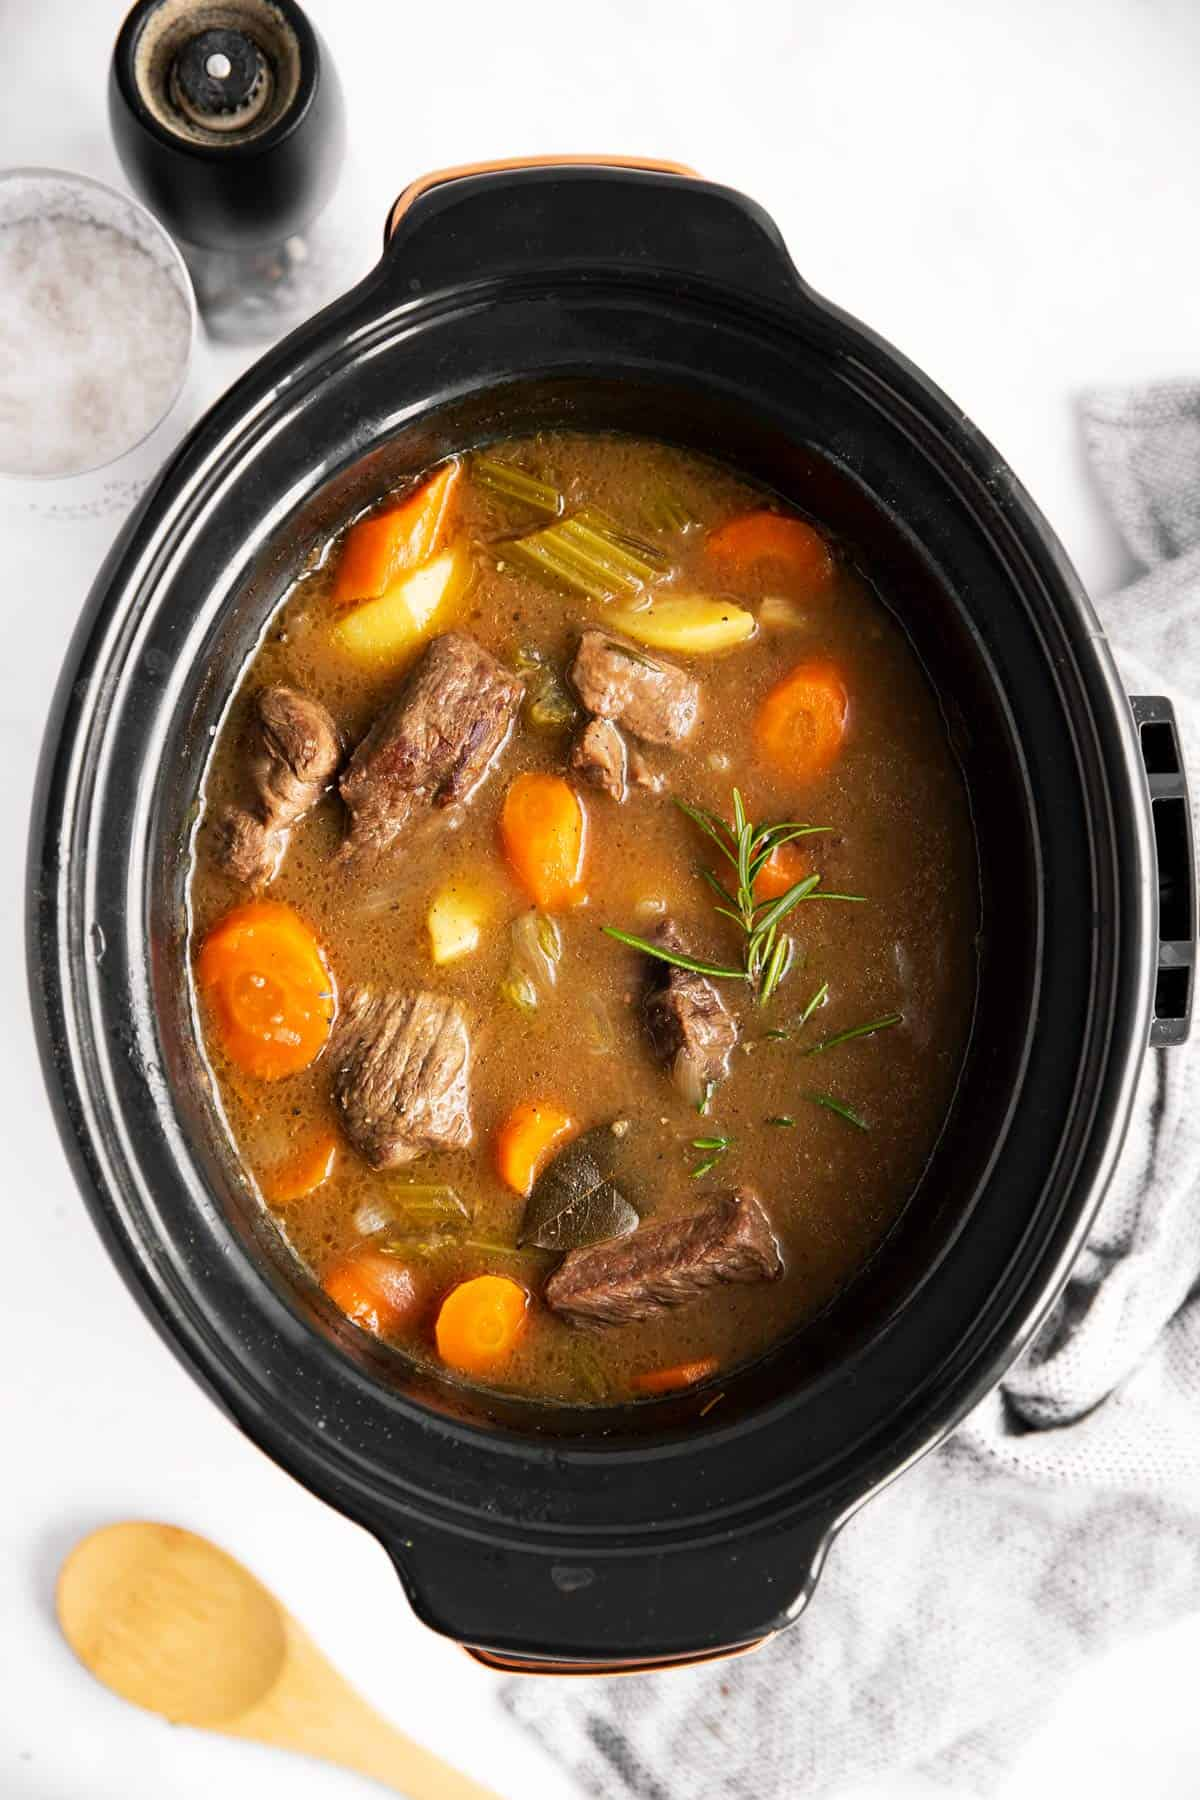 top down view of a slow cooker with beef stew inside